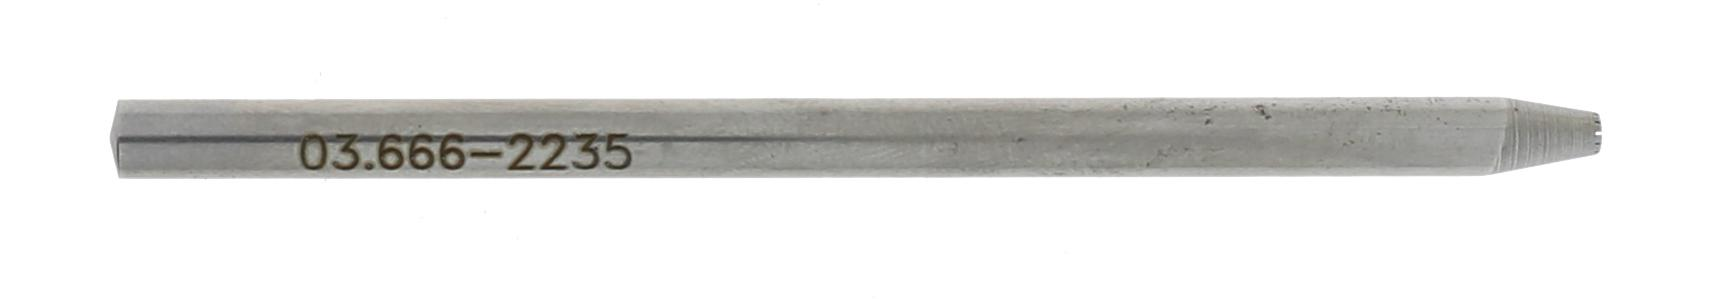 Oscillating Weight Axle Punch for Rolex 2235